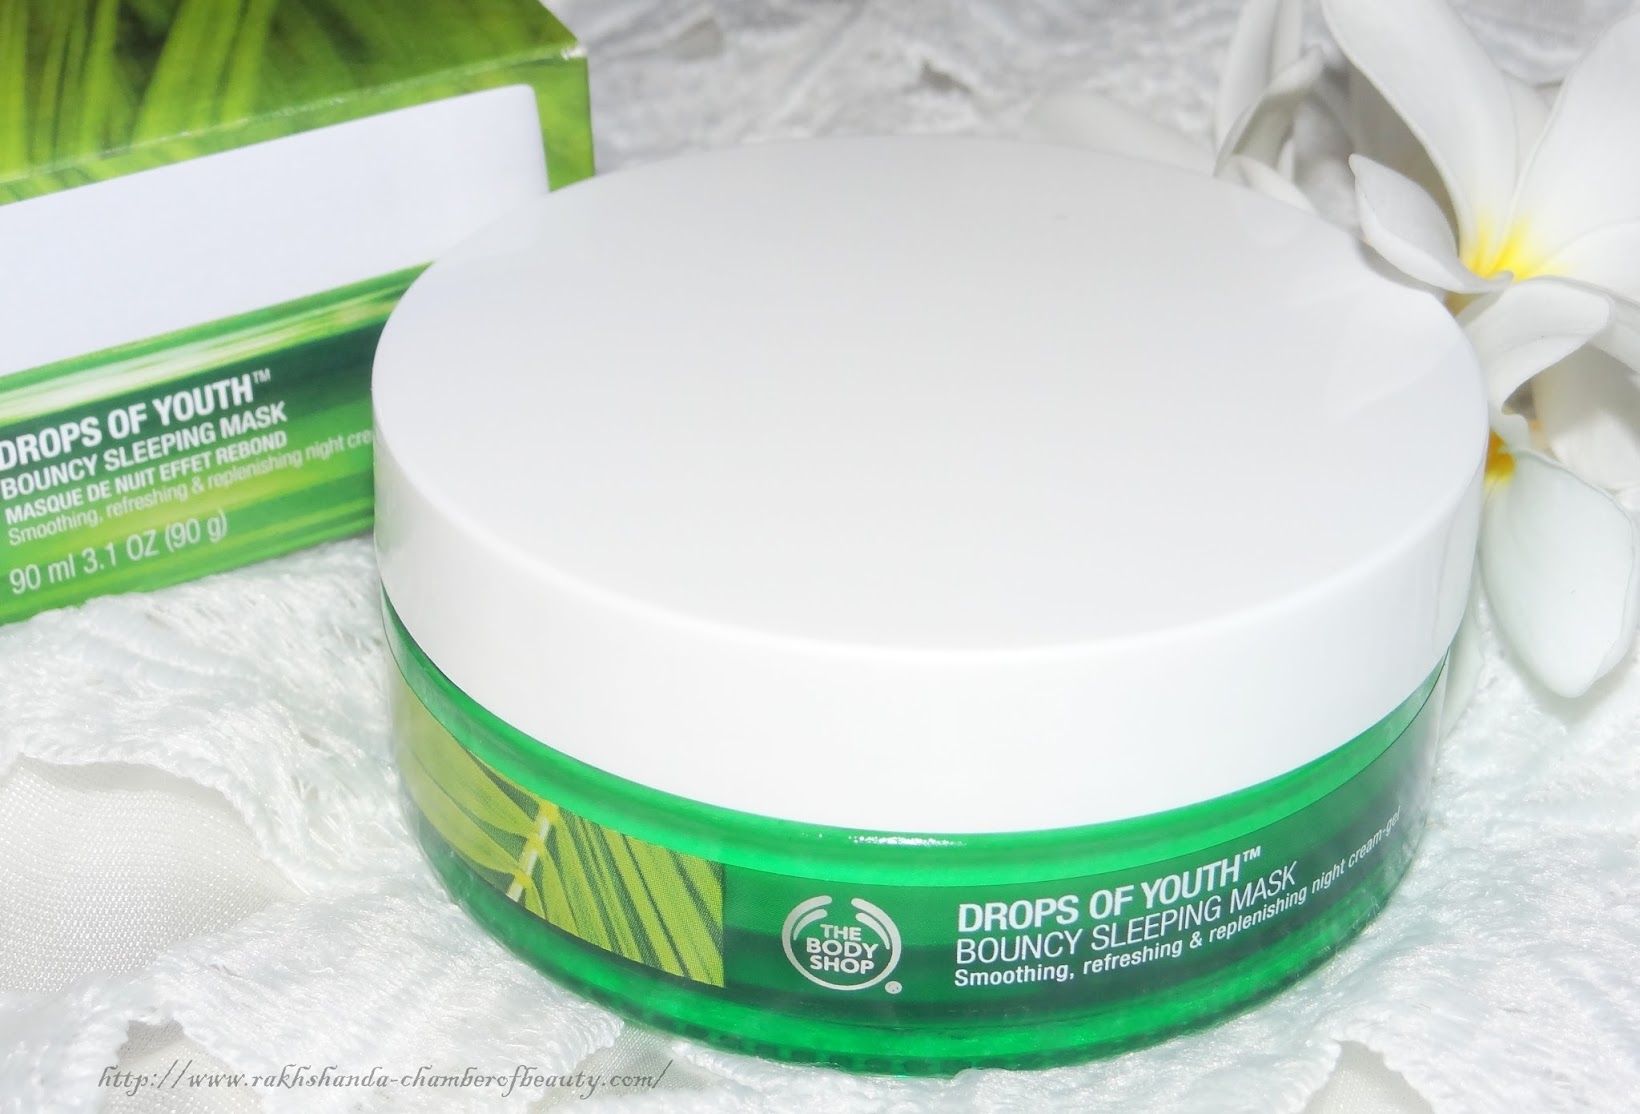 The Body Shop Drops of Youth Bouncy Sleeping mask- Review, Photos, Price, night skincare, night-cream gel, Indian beauty blogger